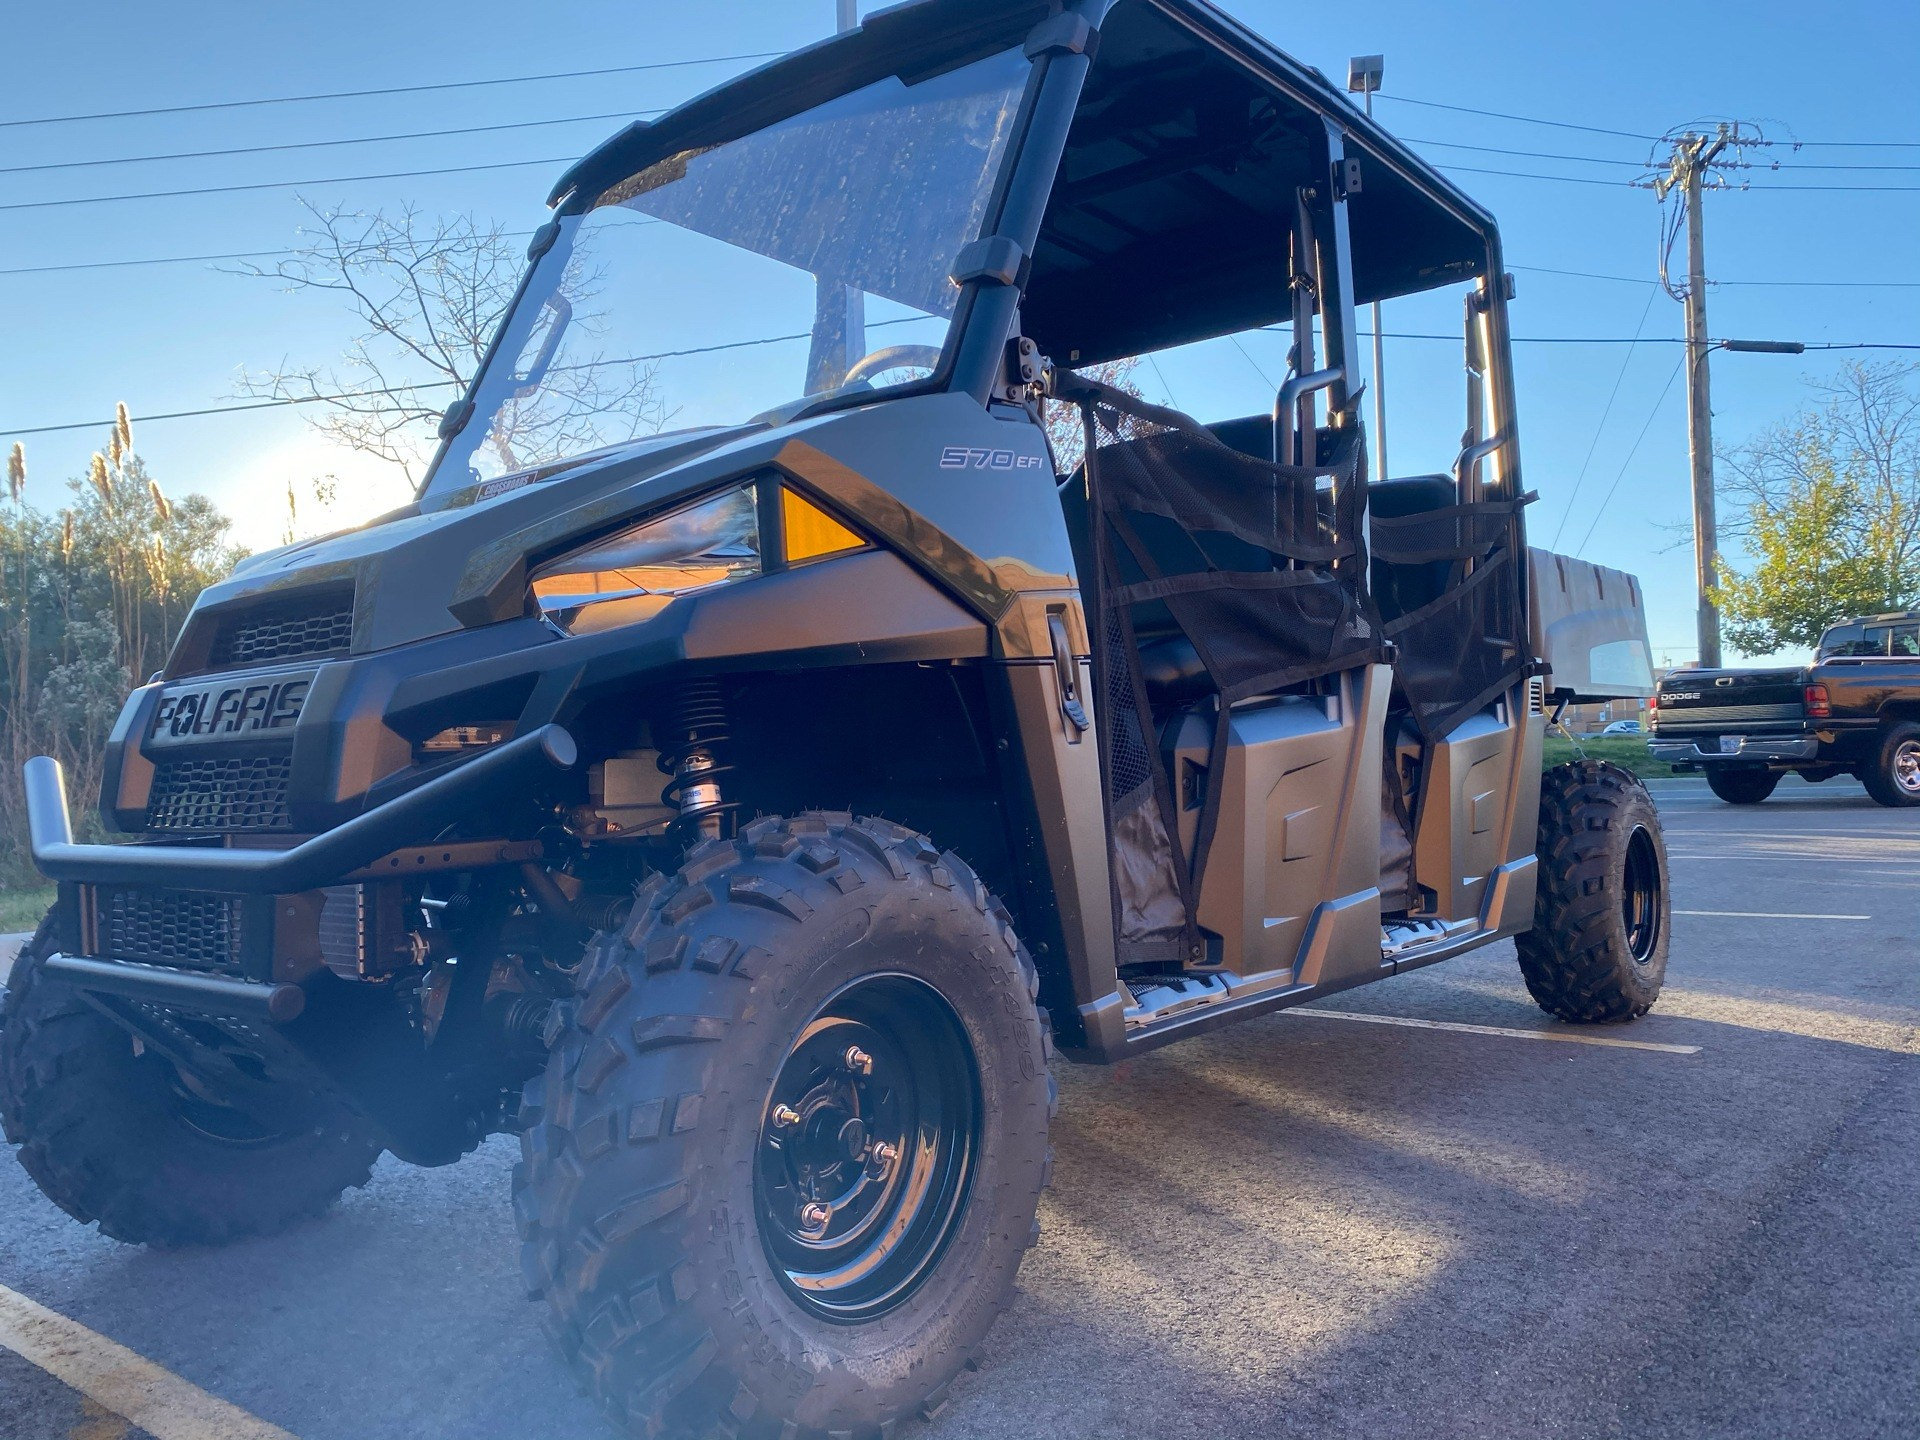 2021 Polaris Ranger Crew 570 in Albemarle, North Carolina - Photo 7